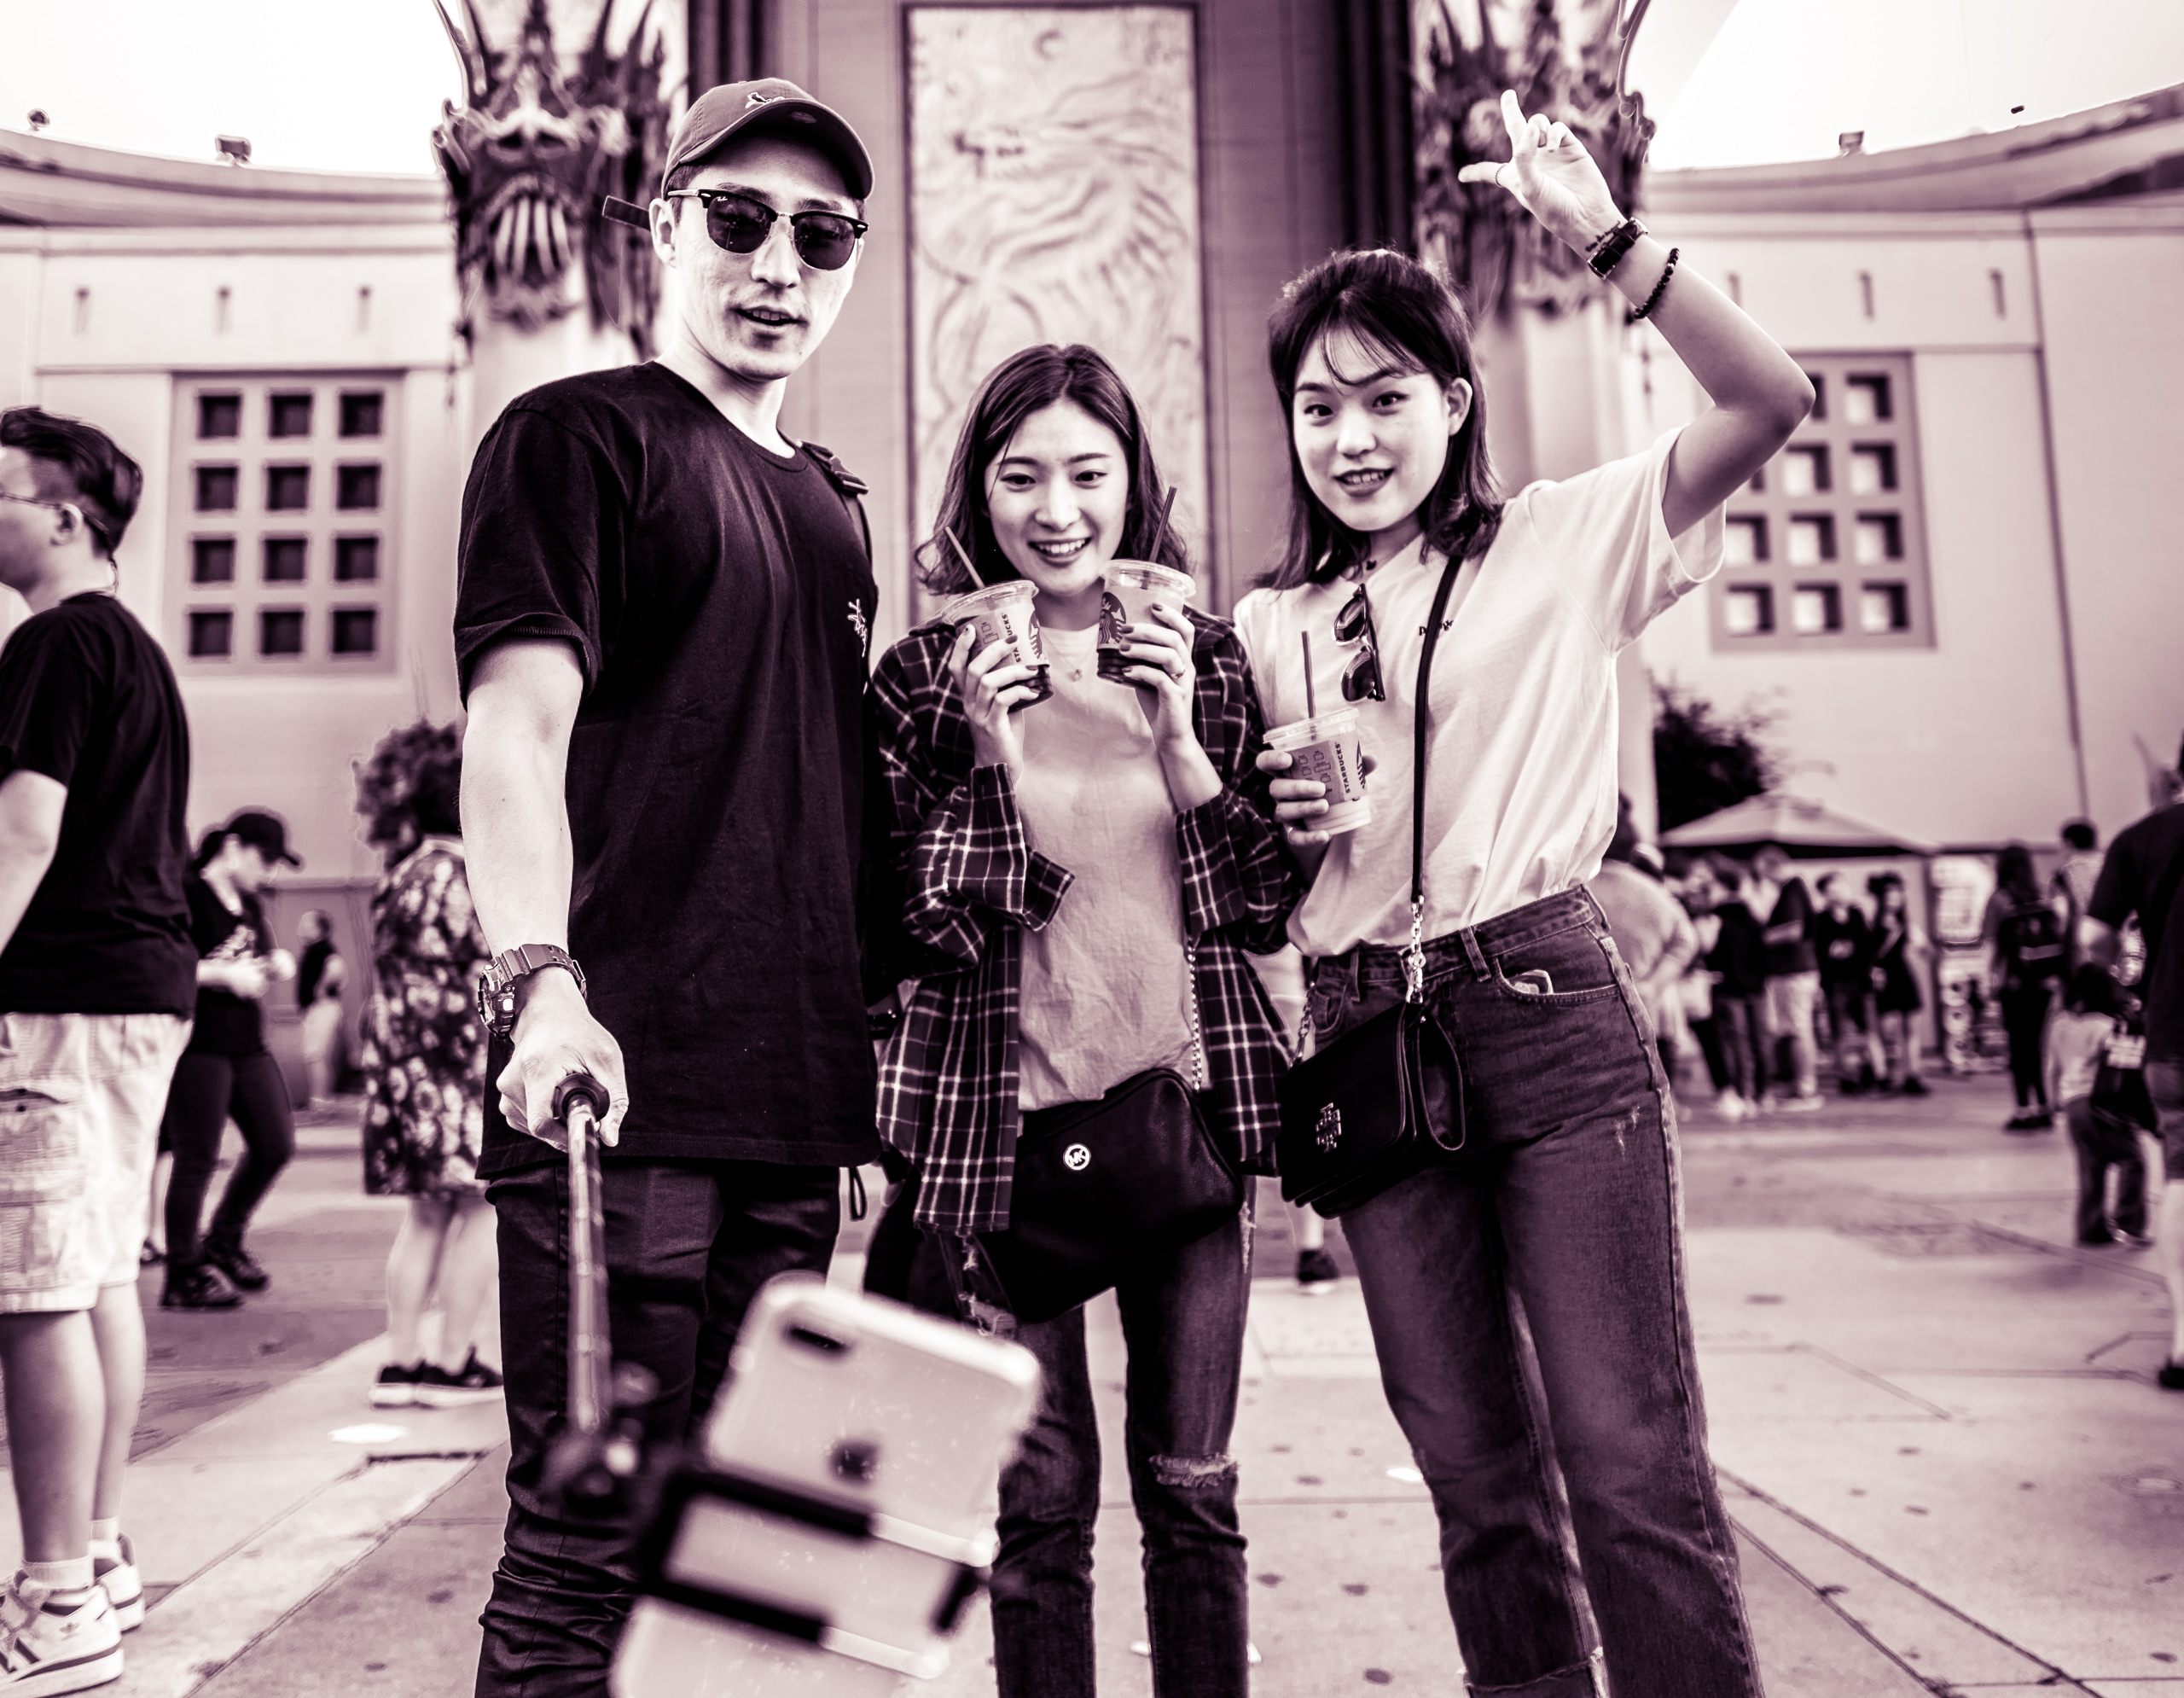 3 tourists stand in front of the Chinese Theater in Hollywood, CA and smile for a phone at the end of a long selfie stick